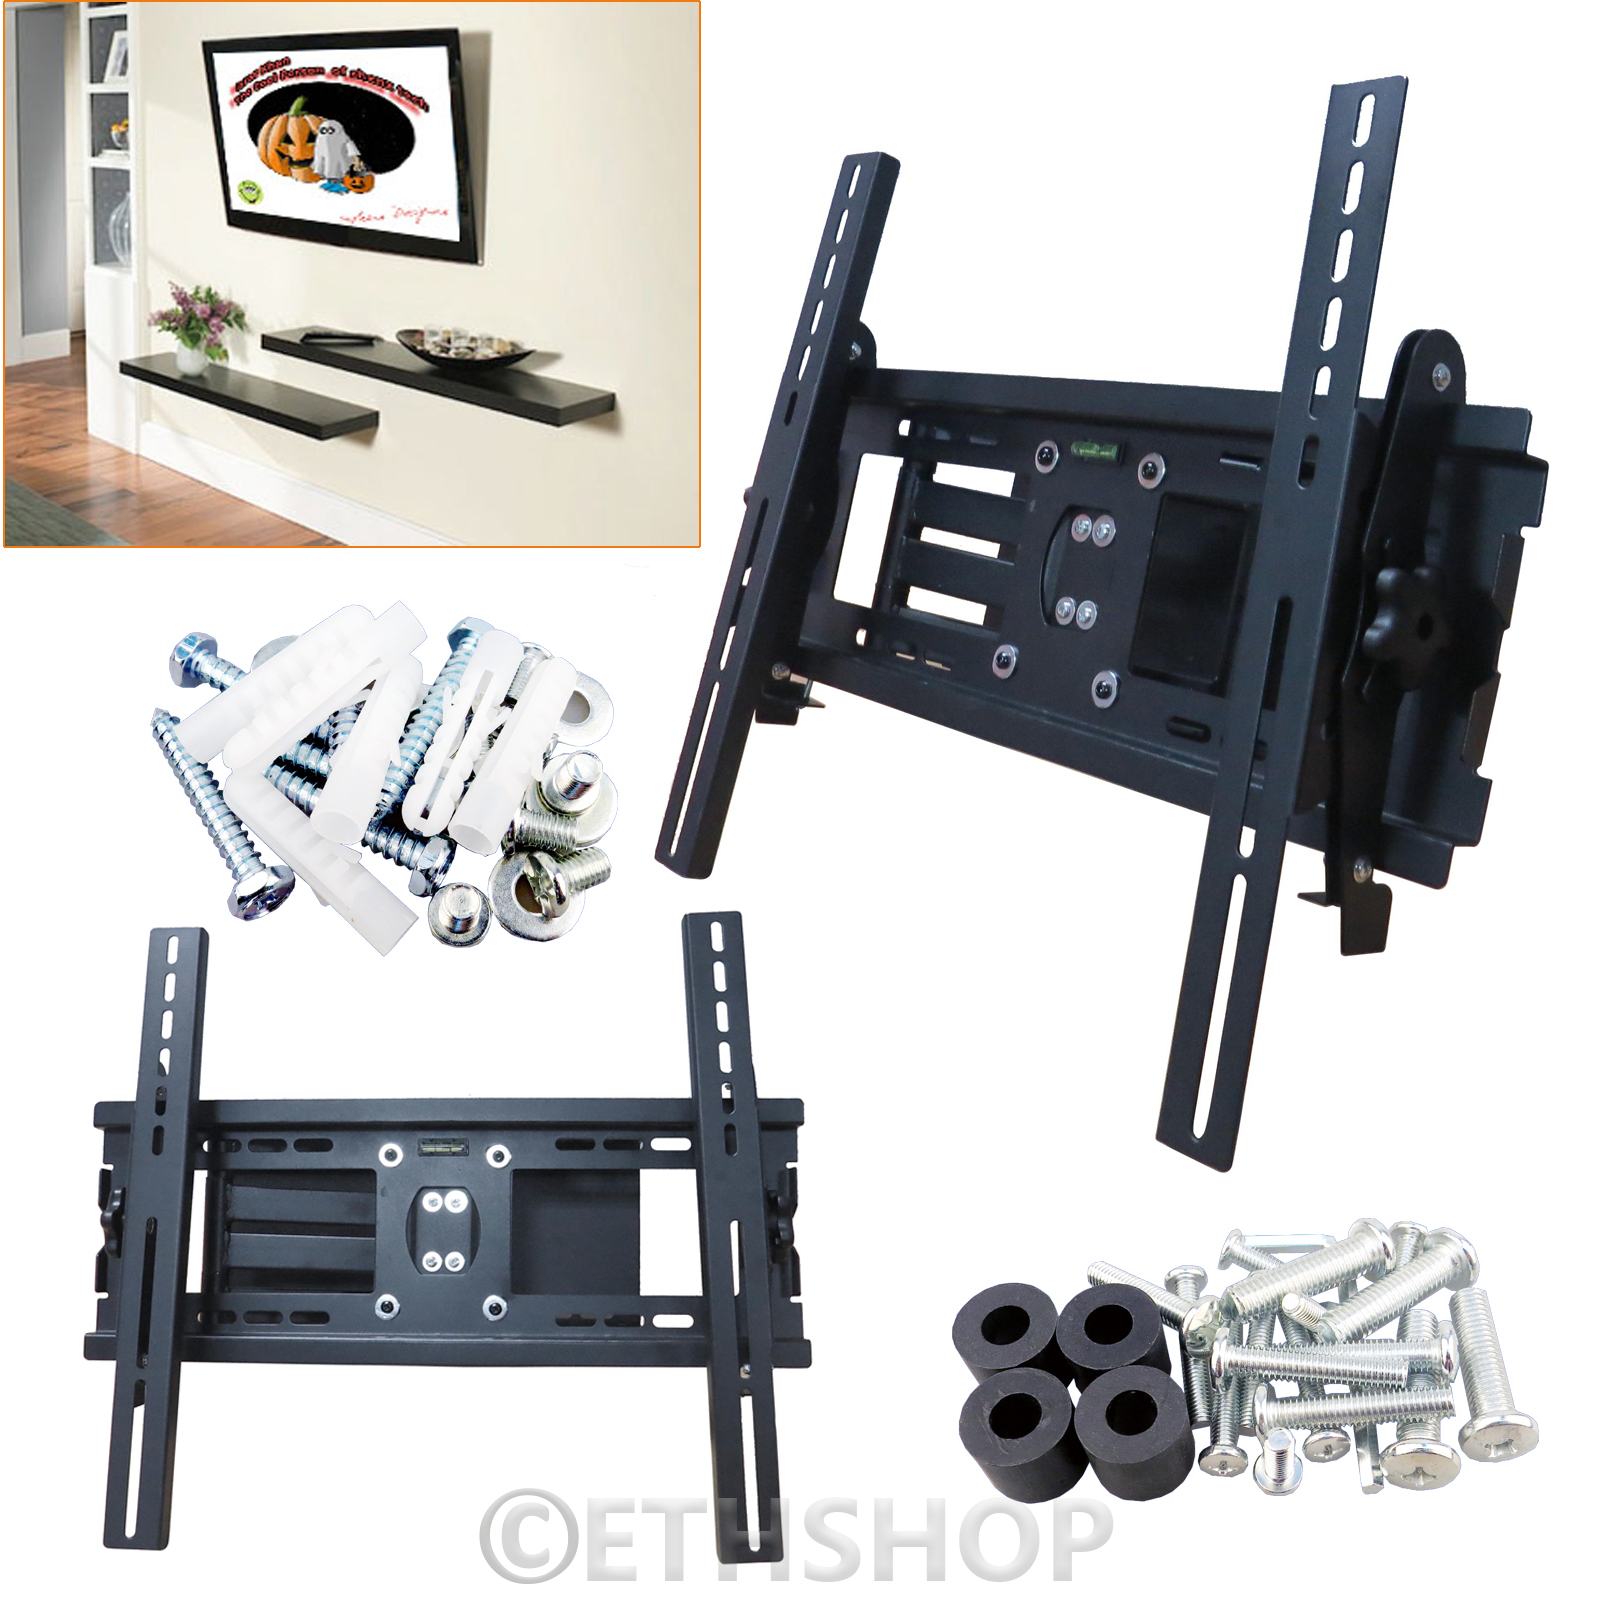 32 37 40 42 46 50 52 60 65 Inches Tv Fixed Bracket Wall